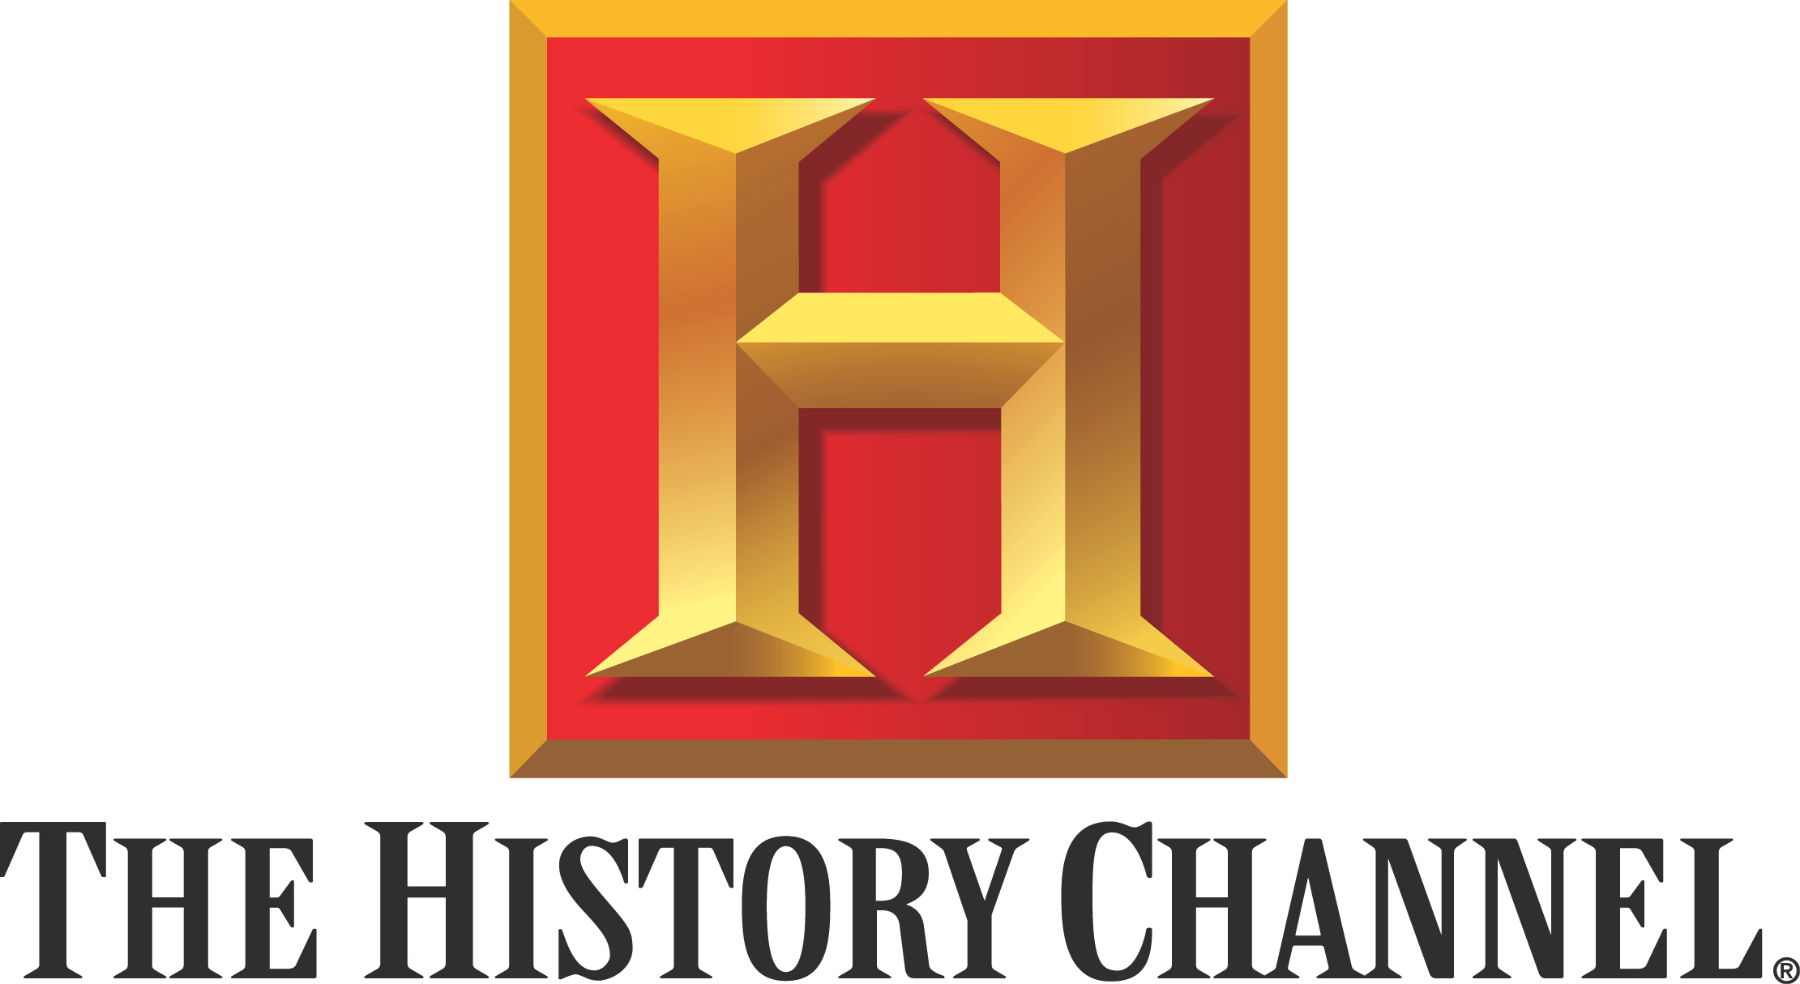 history_channel_logo.jpg